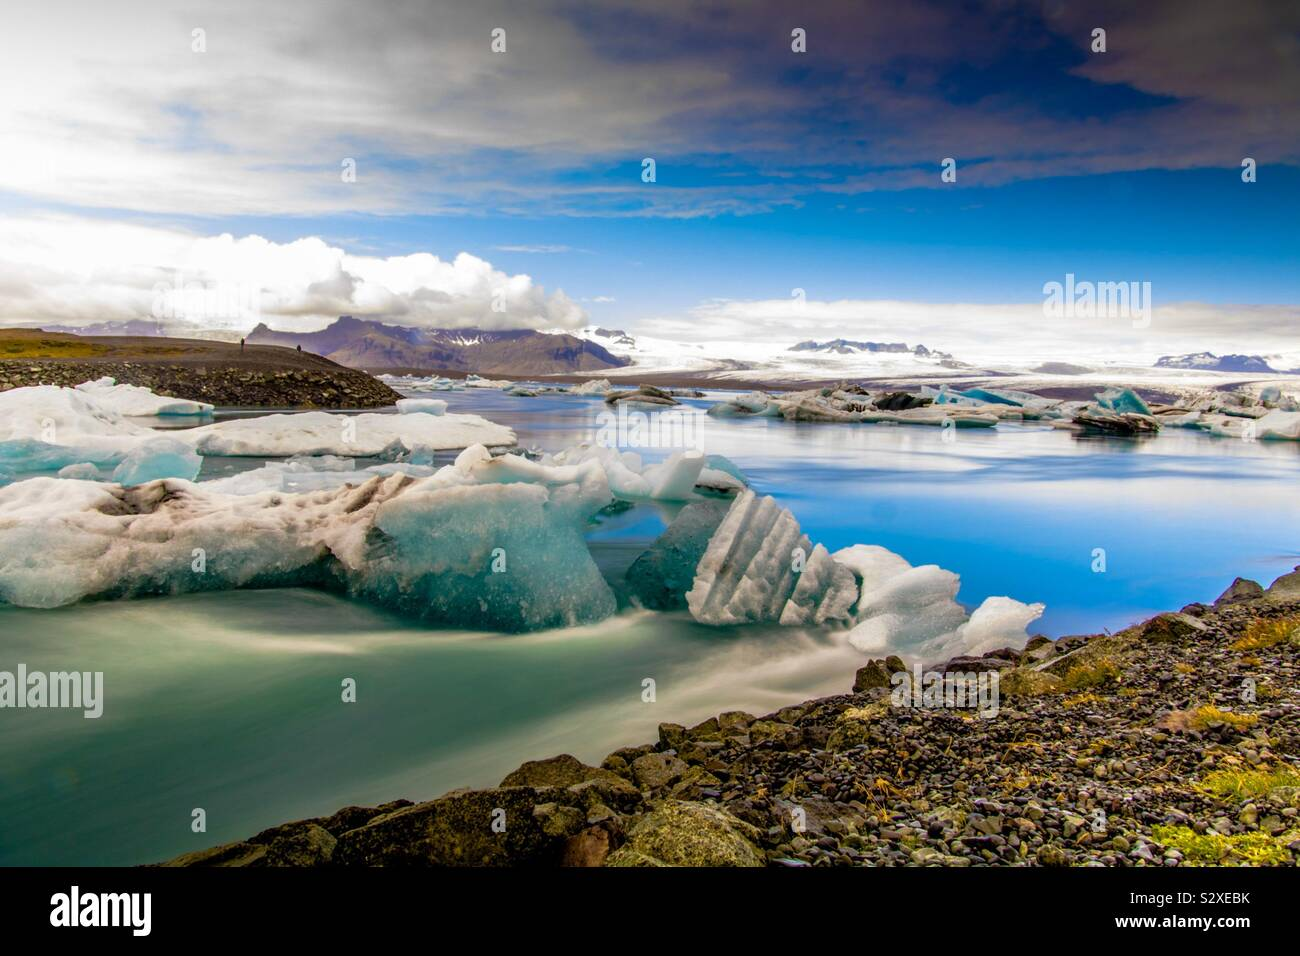 Long exposure of a lagoon in Iceland with floating ice floes Stock Photo